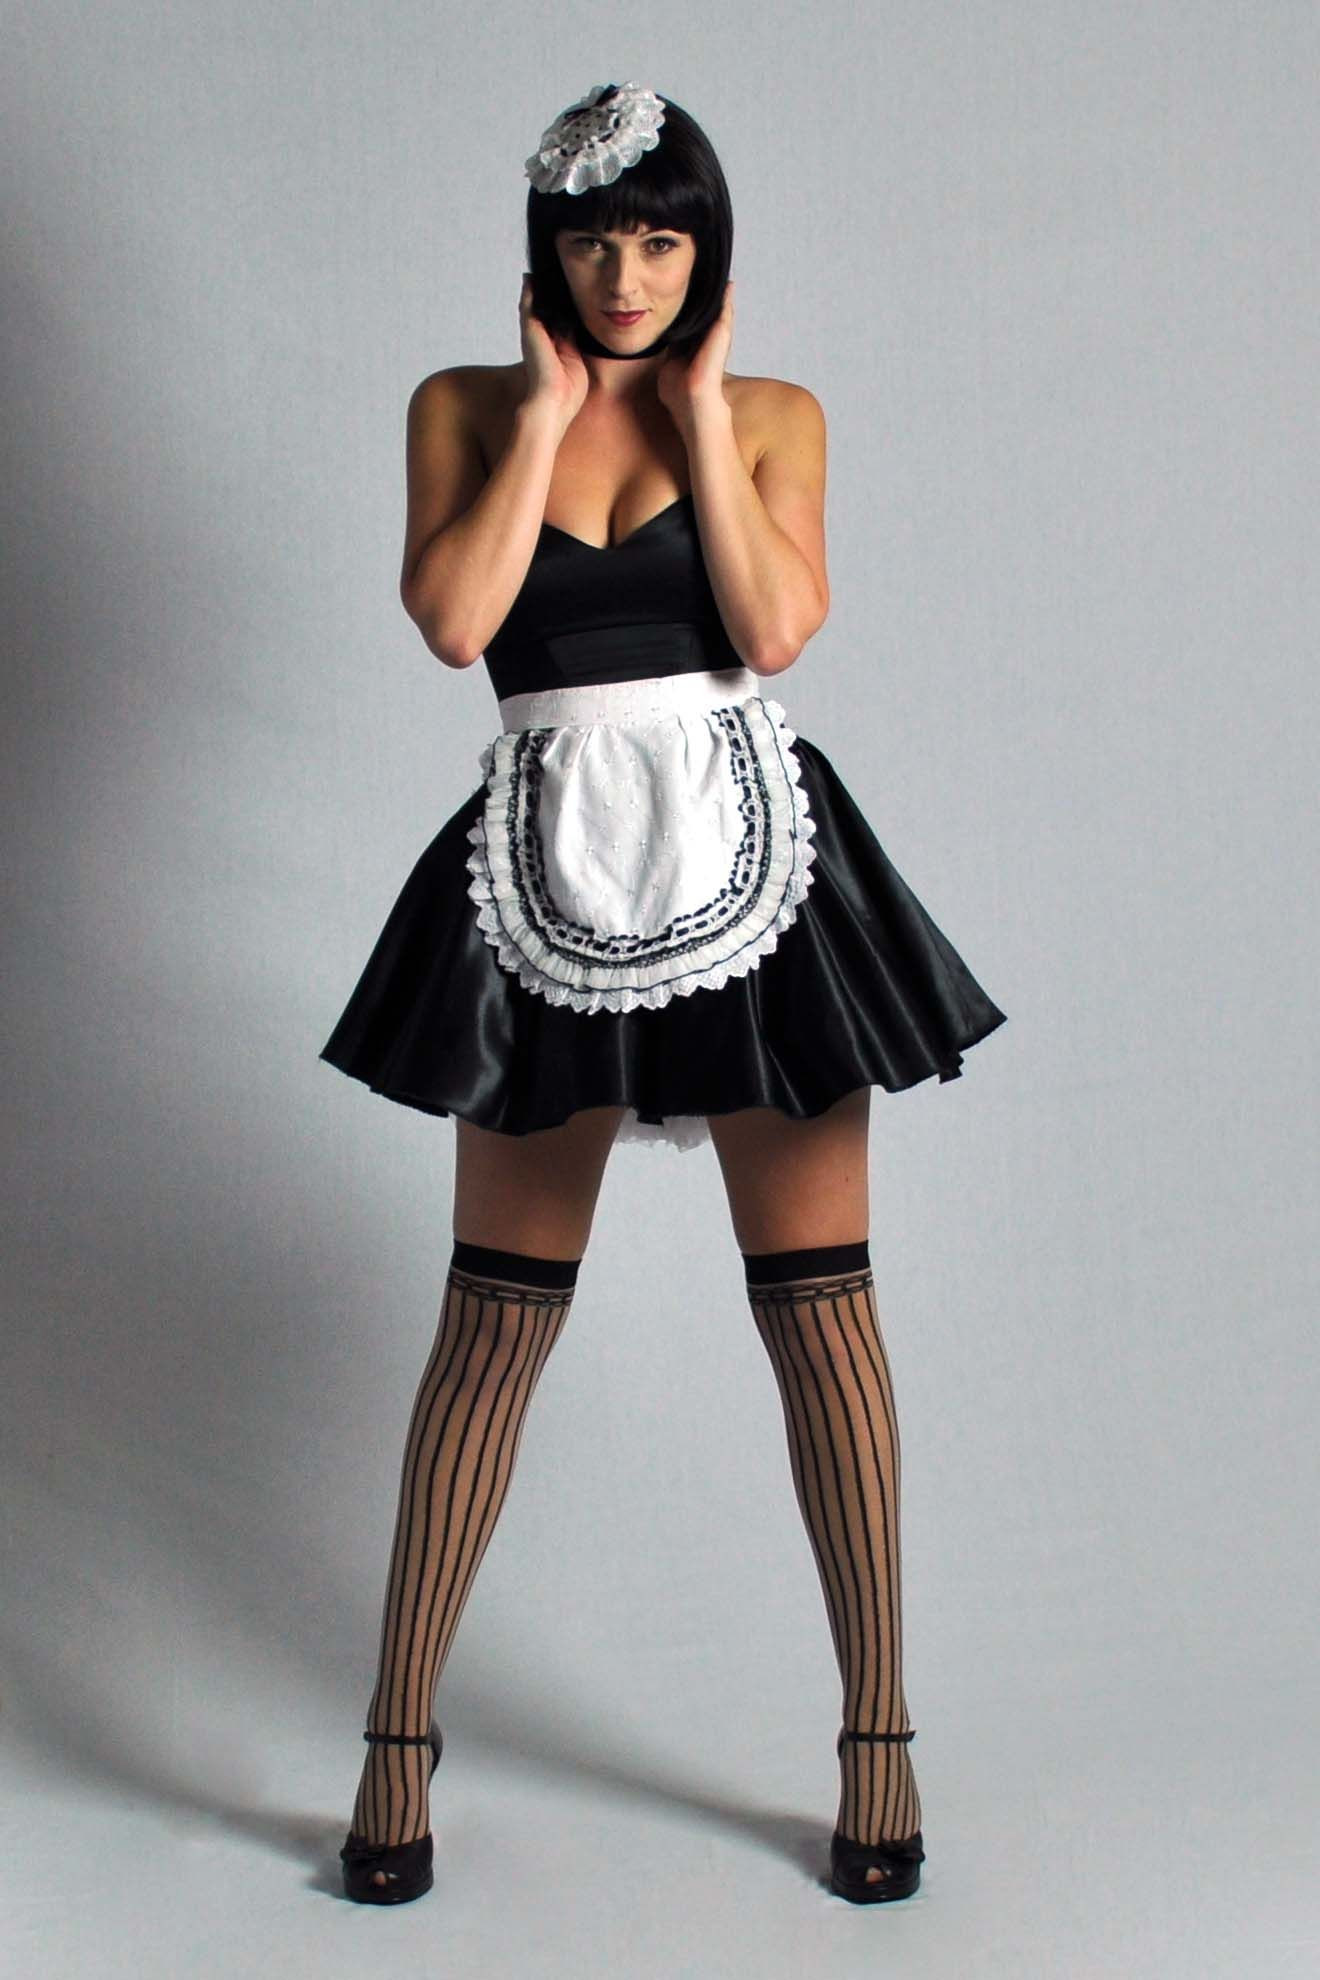 French Maid Costume DIY  French Maid Costume The Costume Shop Melbourne